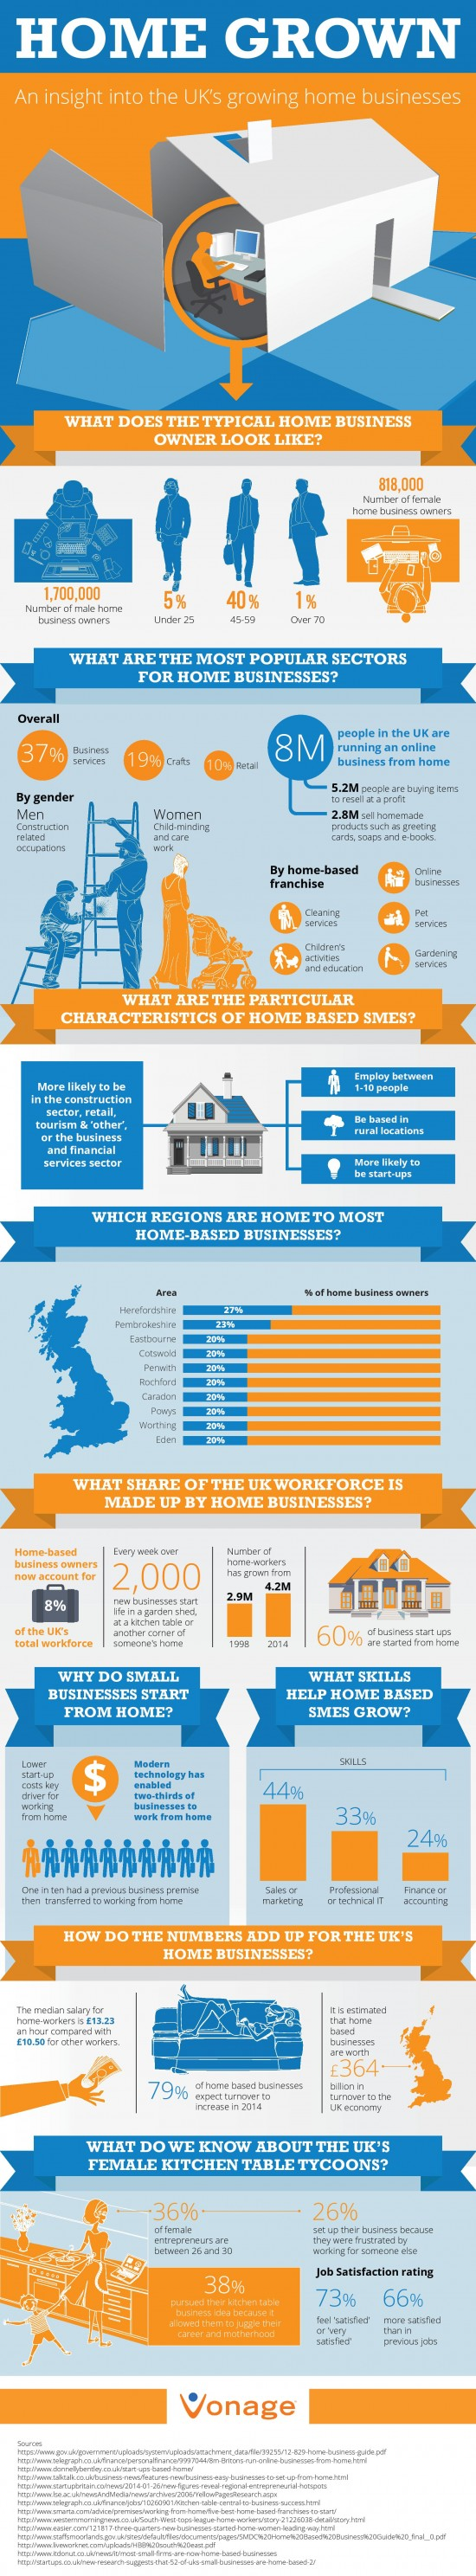 Growth of Home Business in the UK - Vonage Infographic